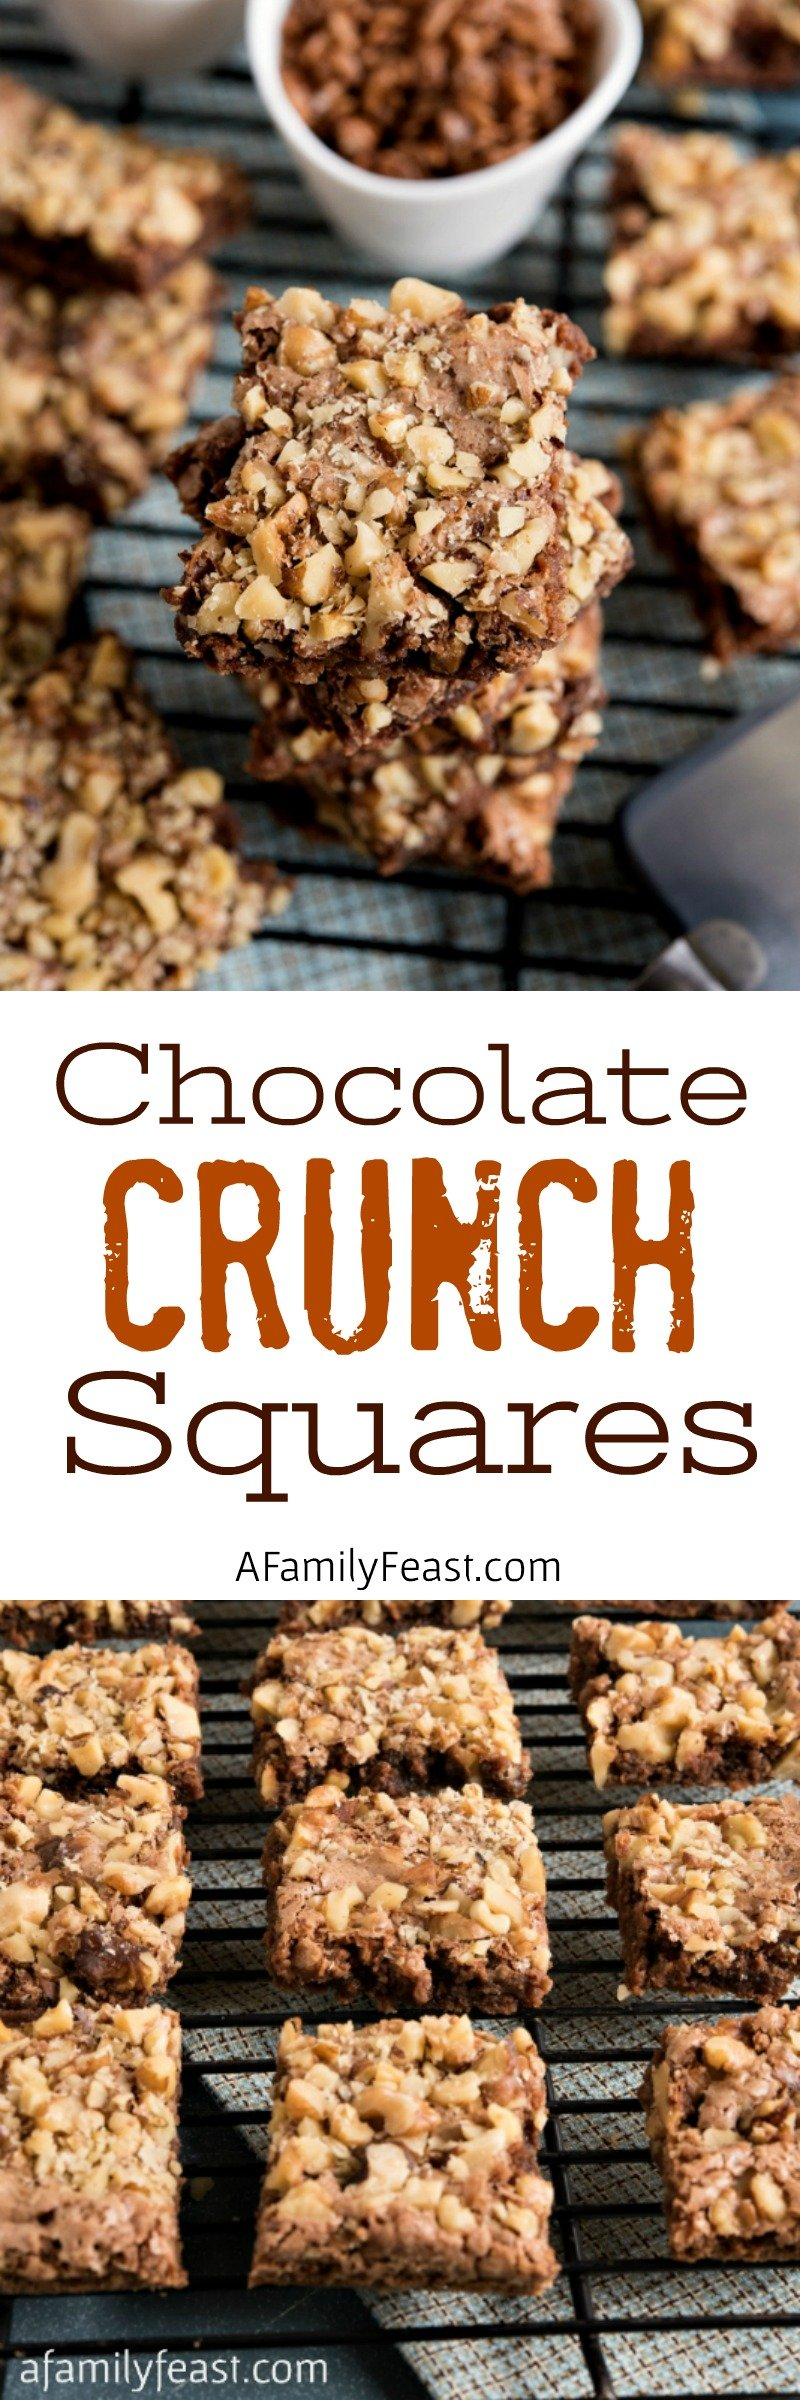 Chocolate Crunch Squares